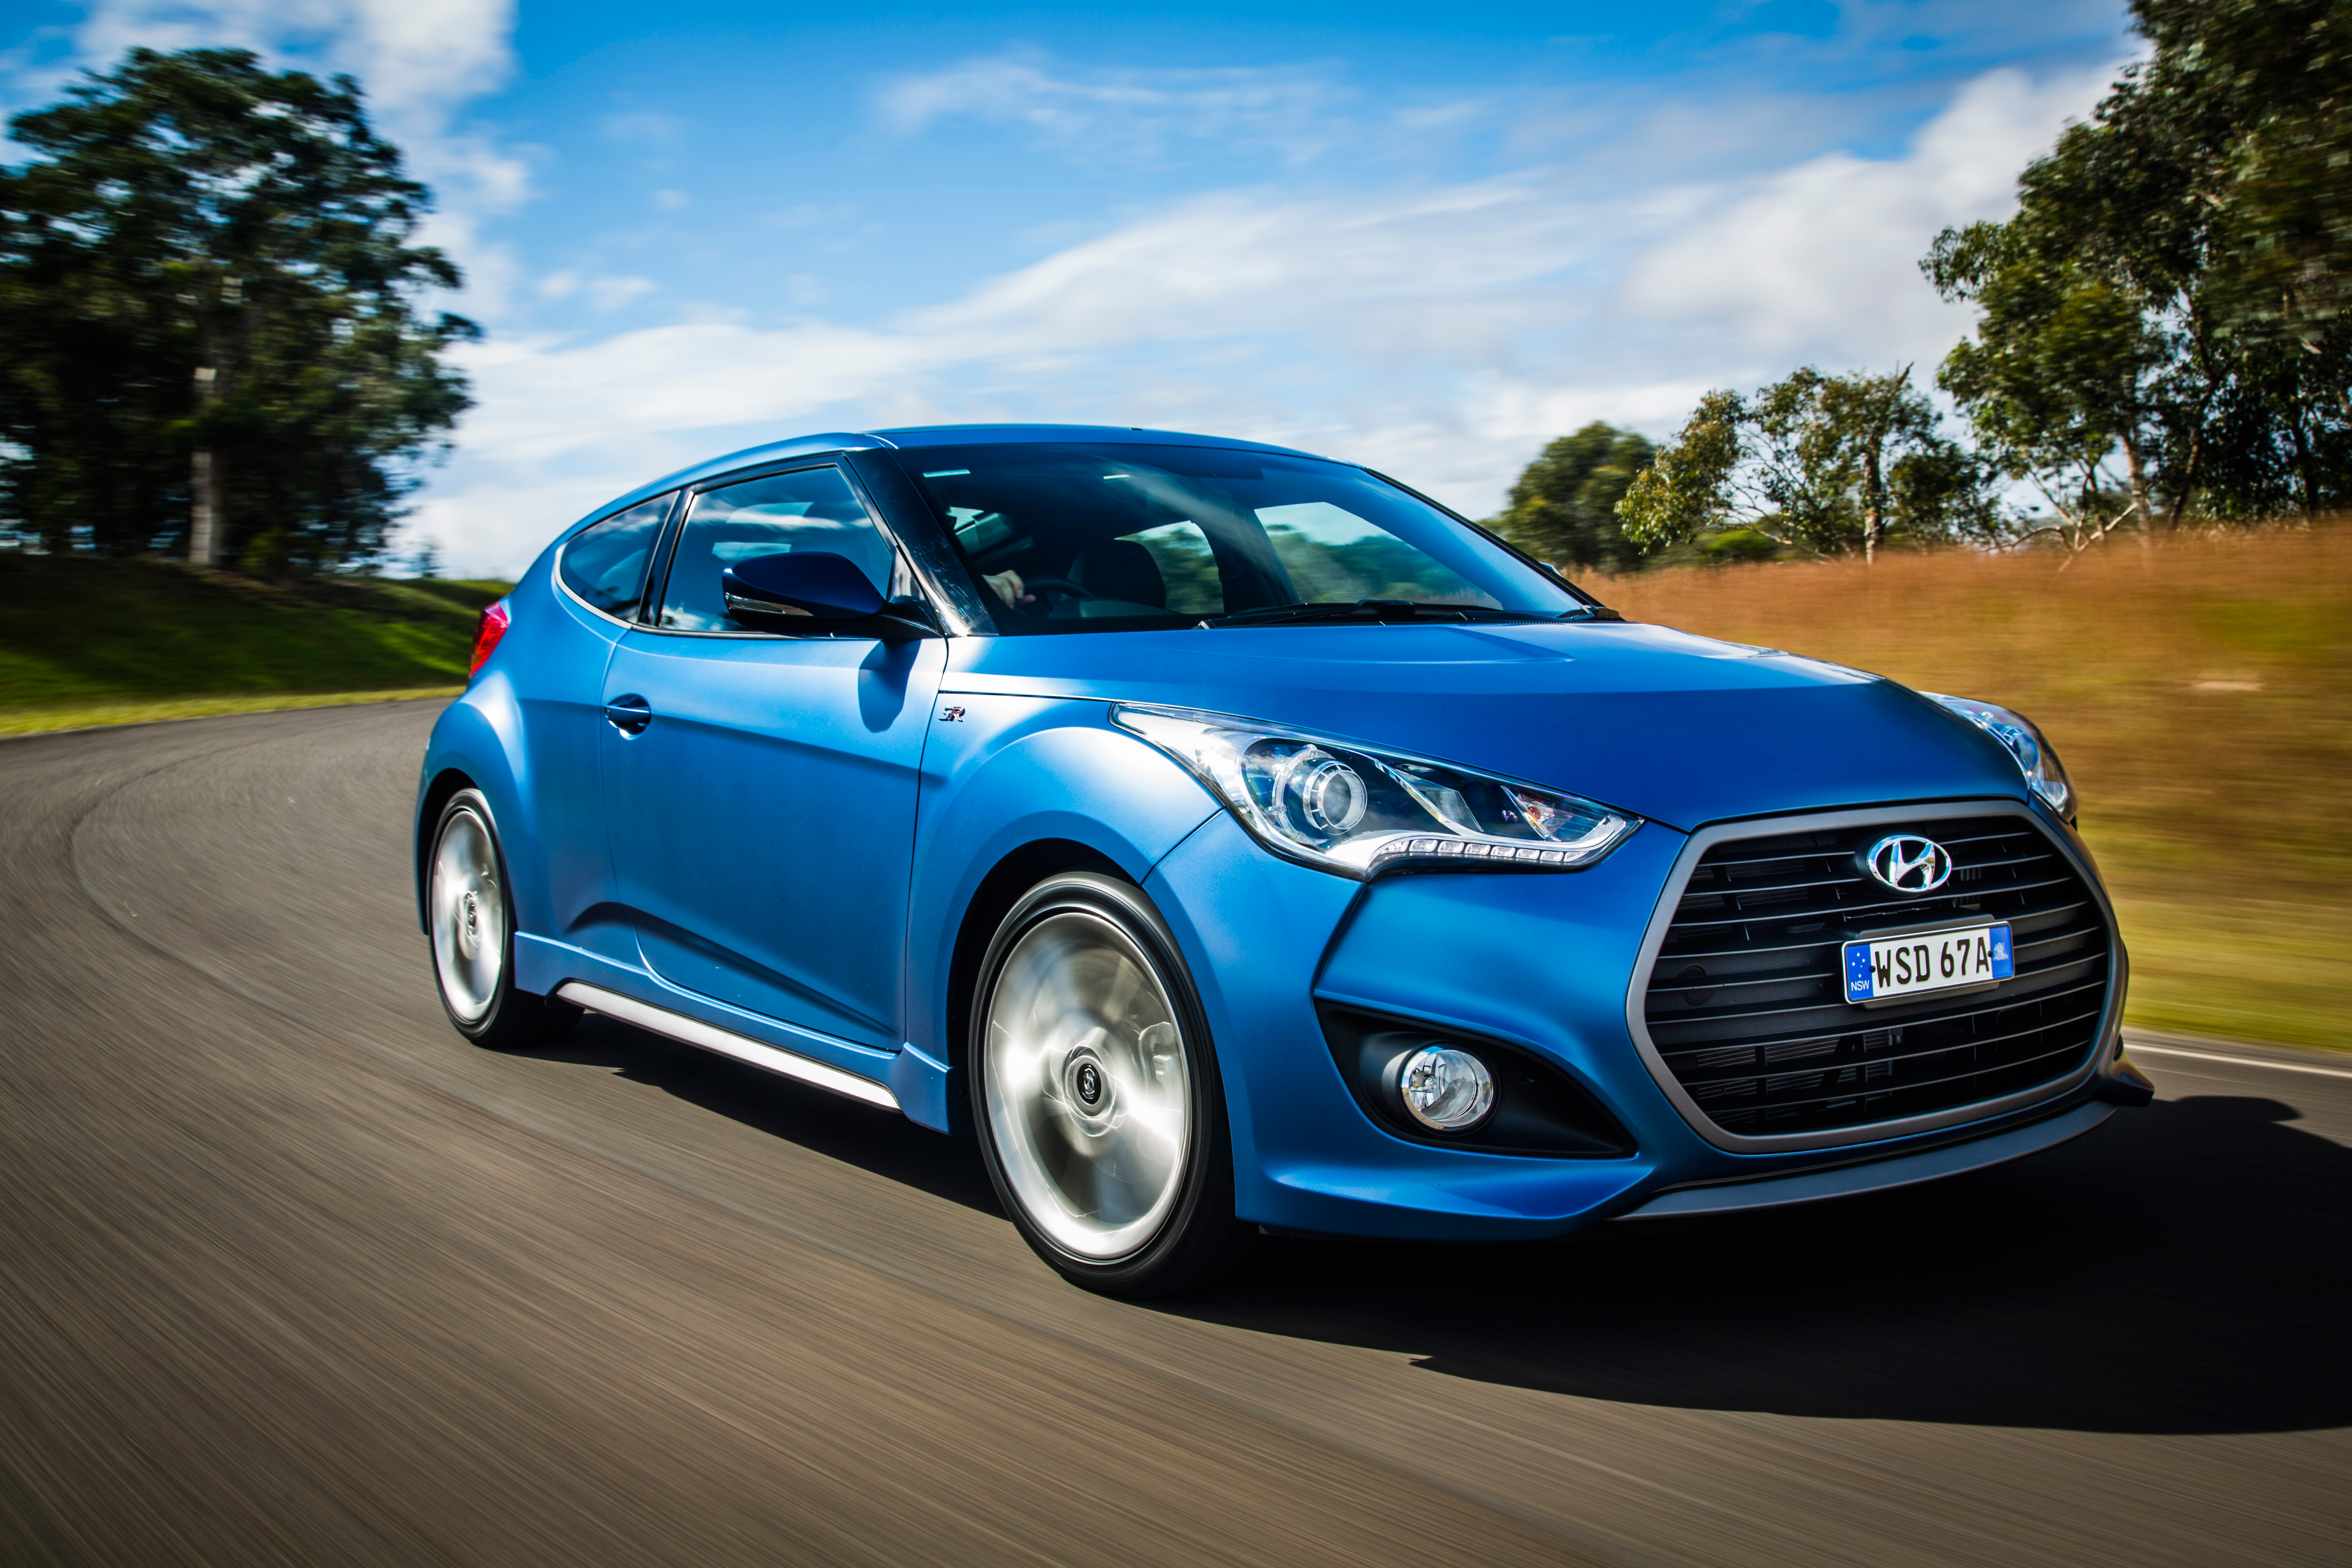 2015 Hyundai Veloster SR Turbo - First Drive